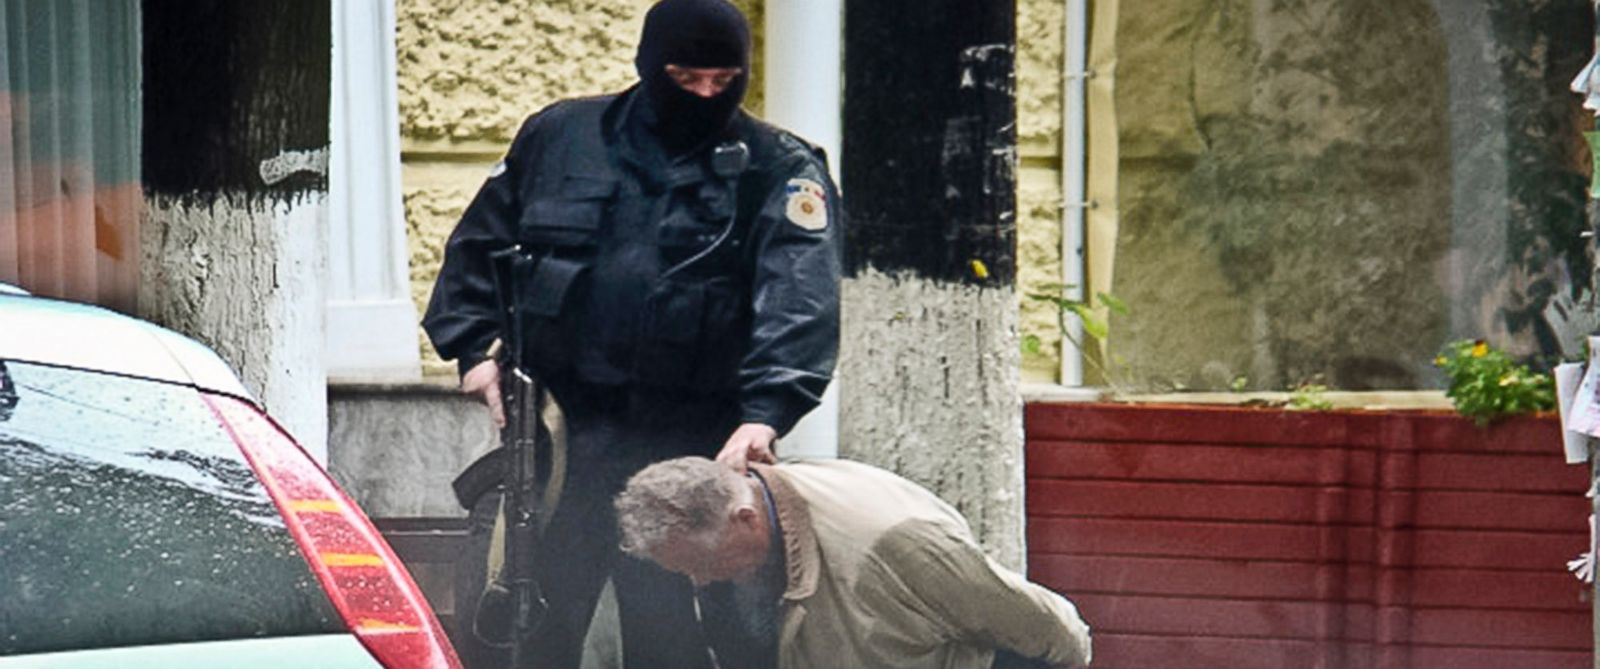 PHOTO: Teodor Chetrus is detained by a police officer in Chisinau, Moldova during a uranium-235 sting operation, June 27, 2011.